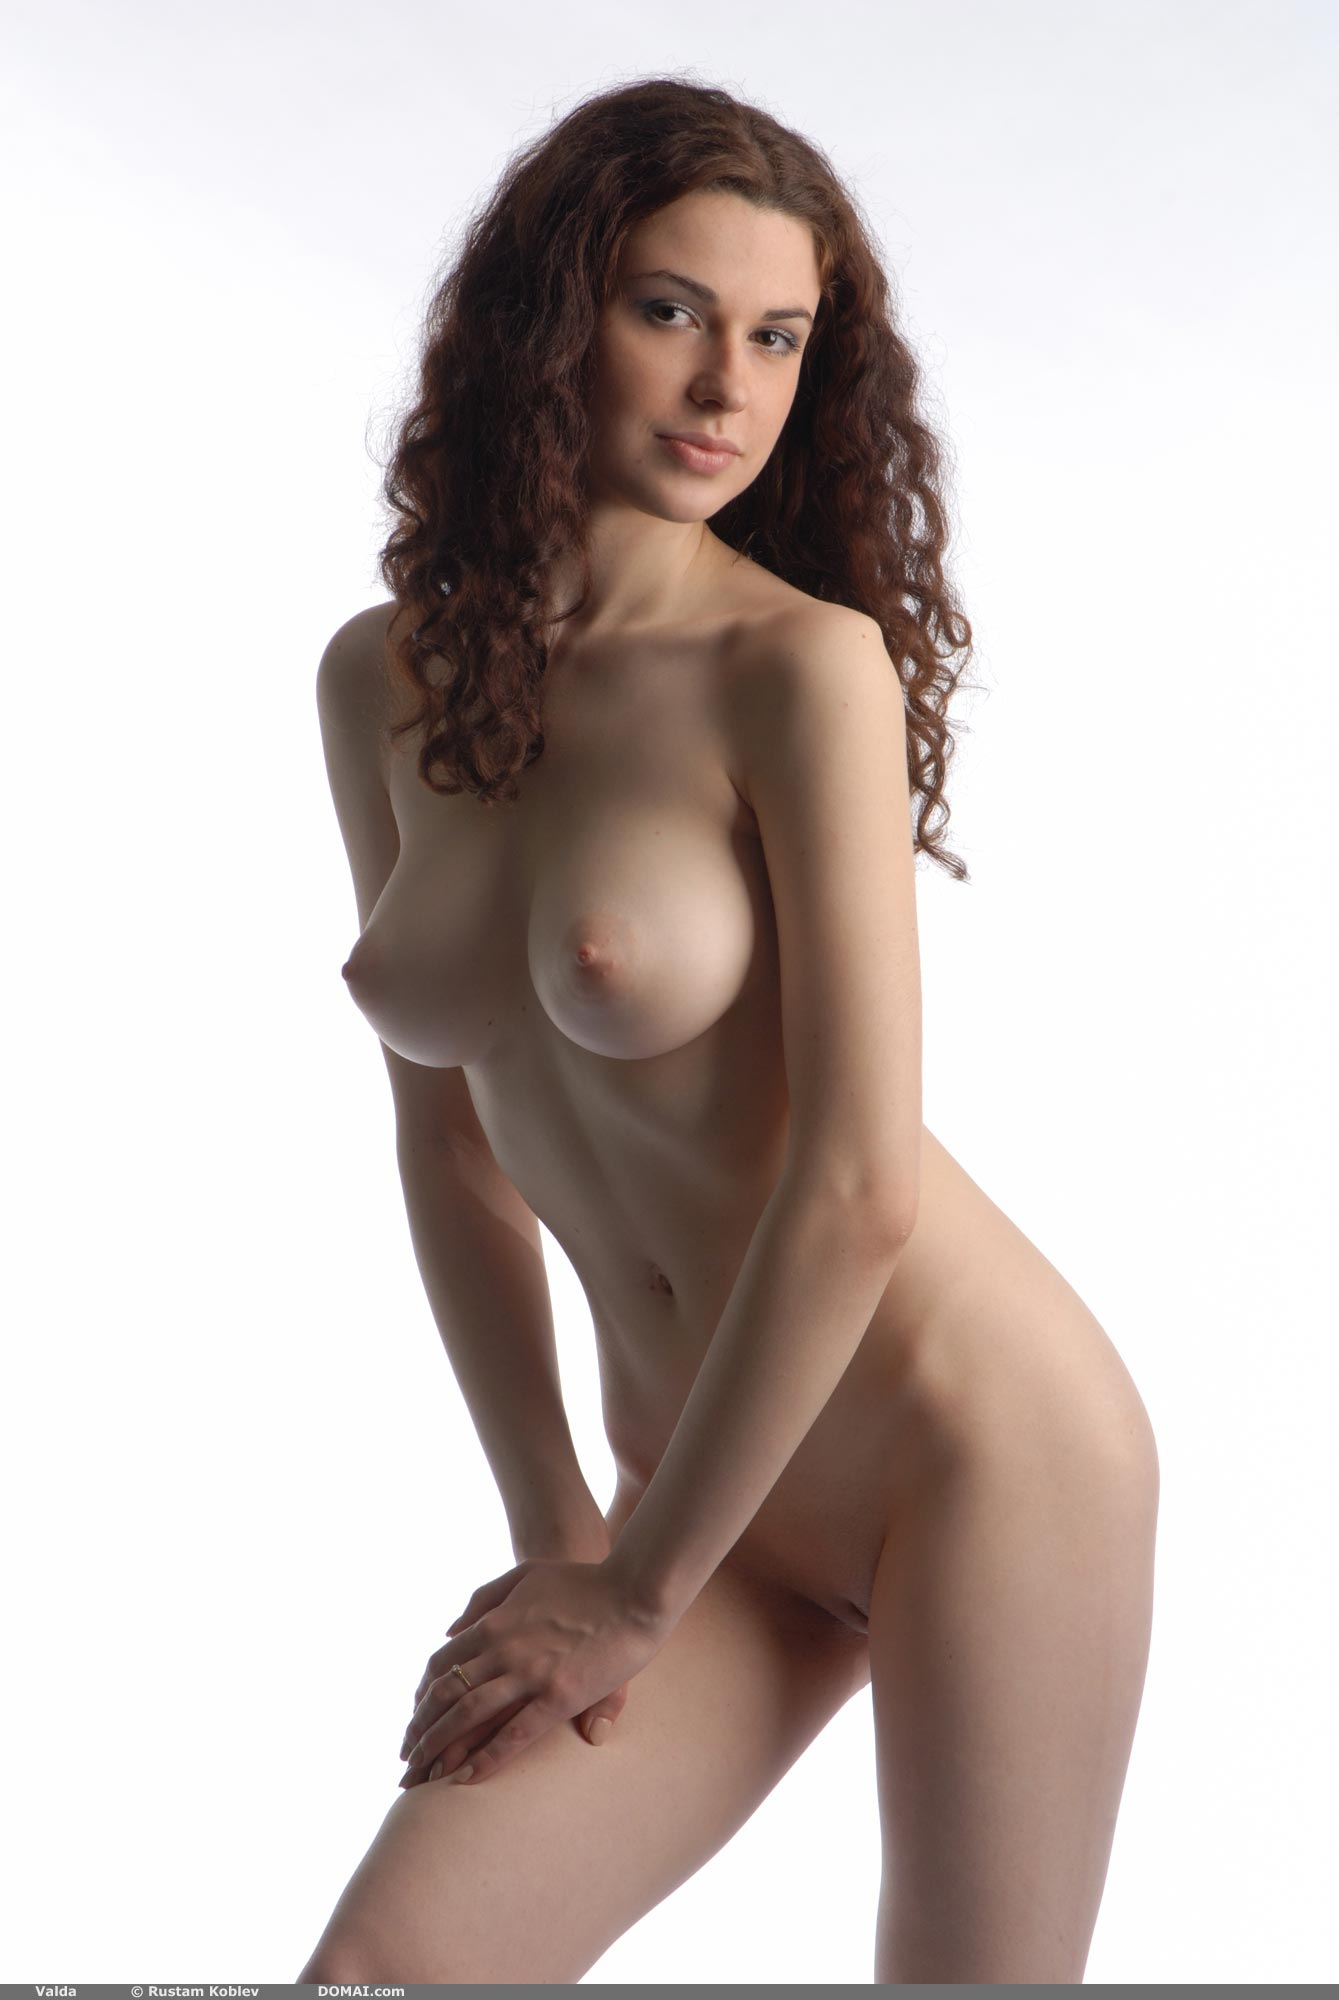 Models beautiful nude art